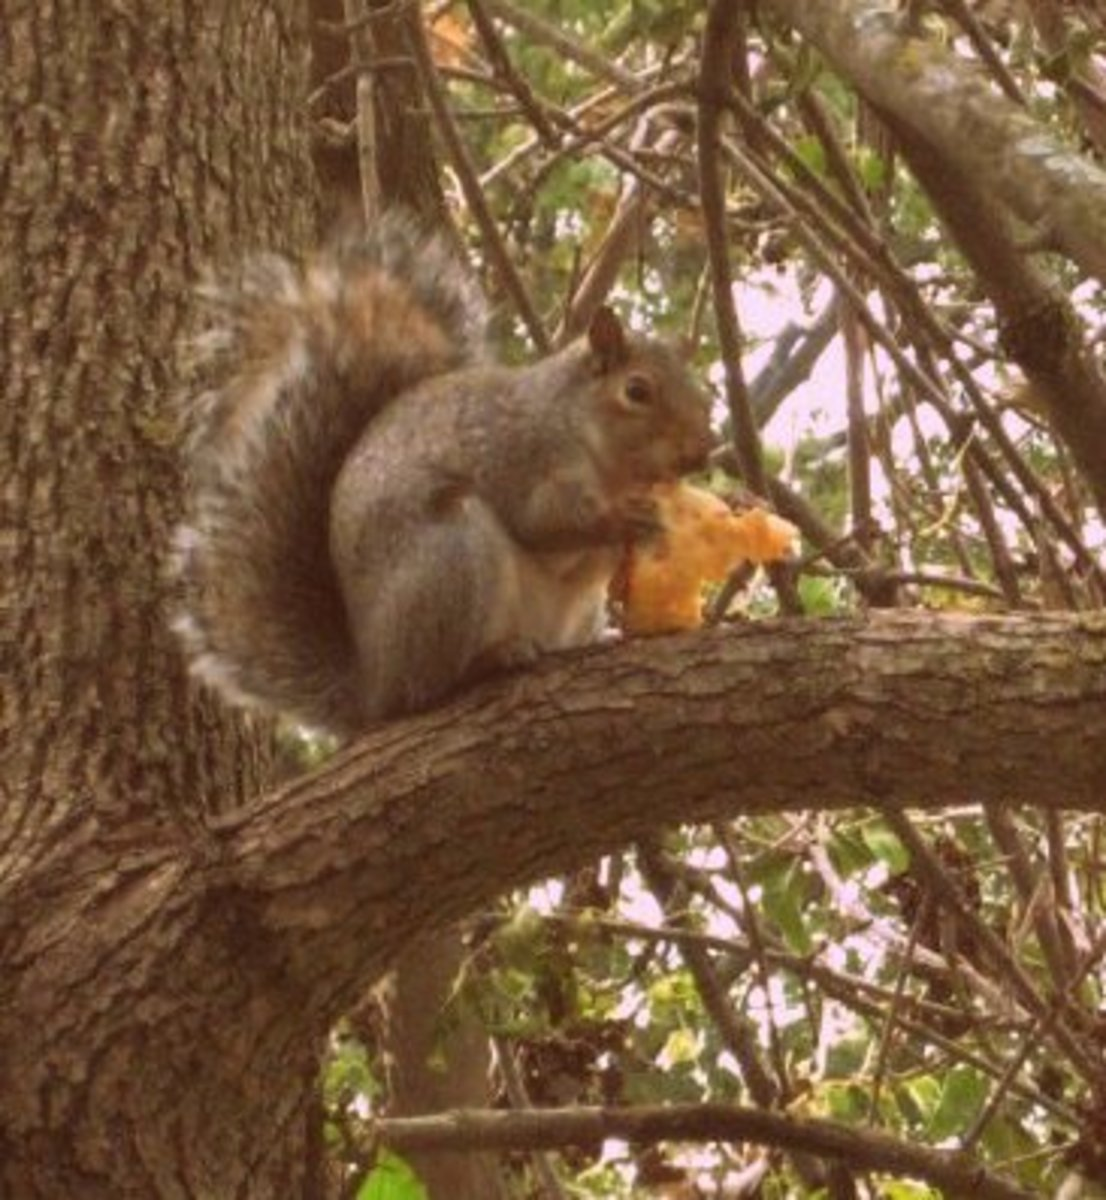 Squirrel in a tree after raiding the garden.